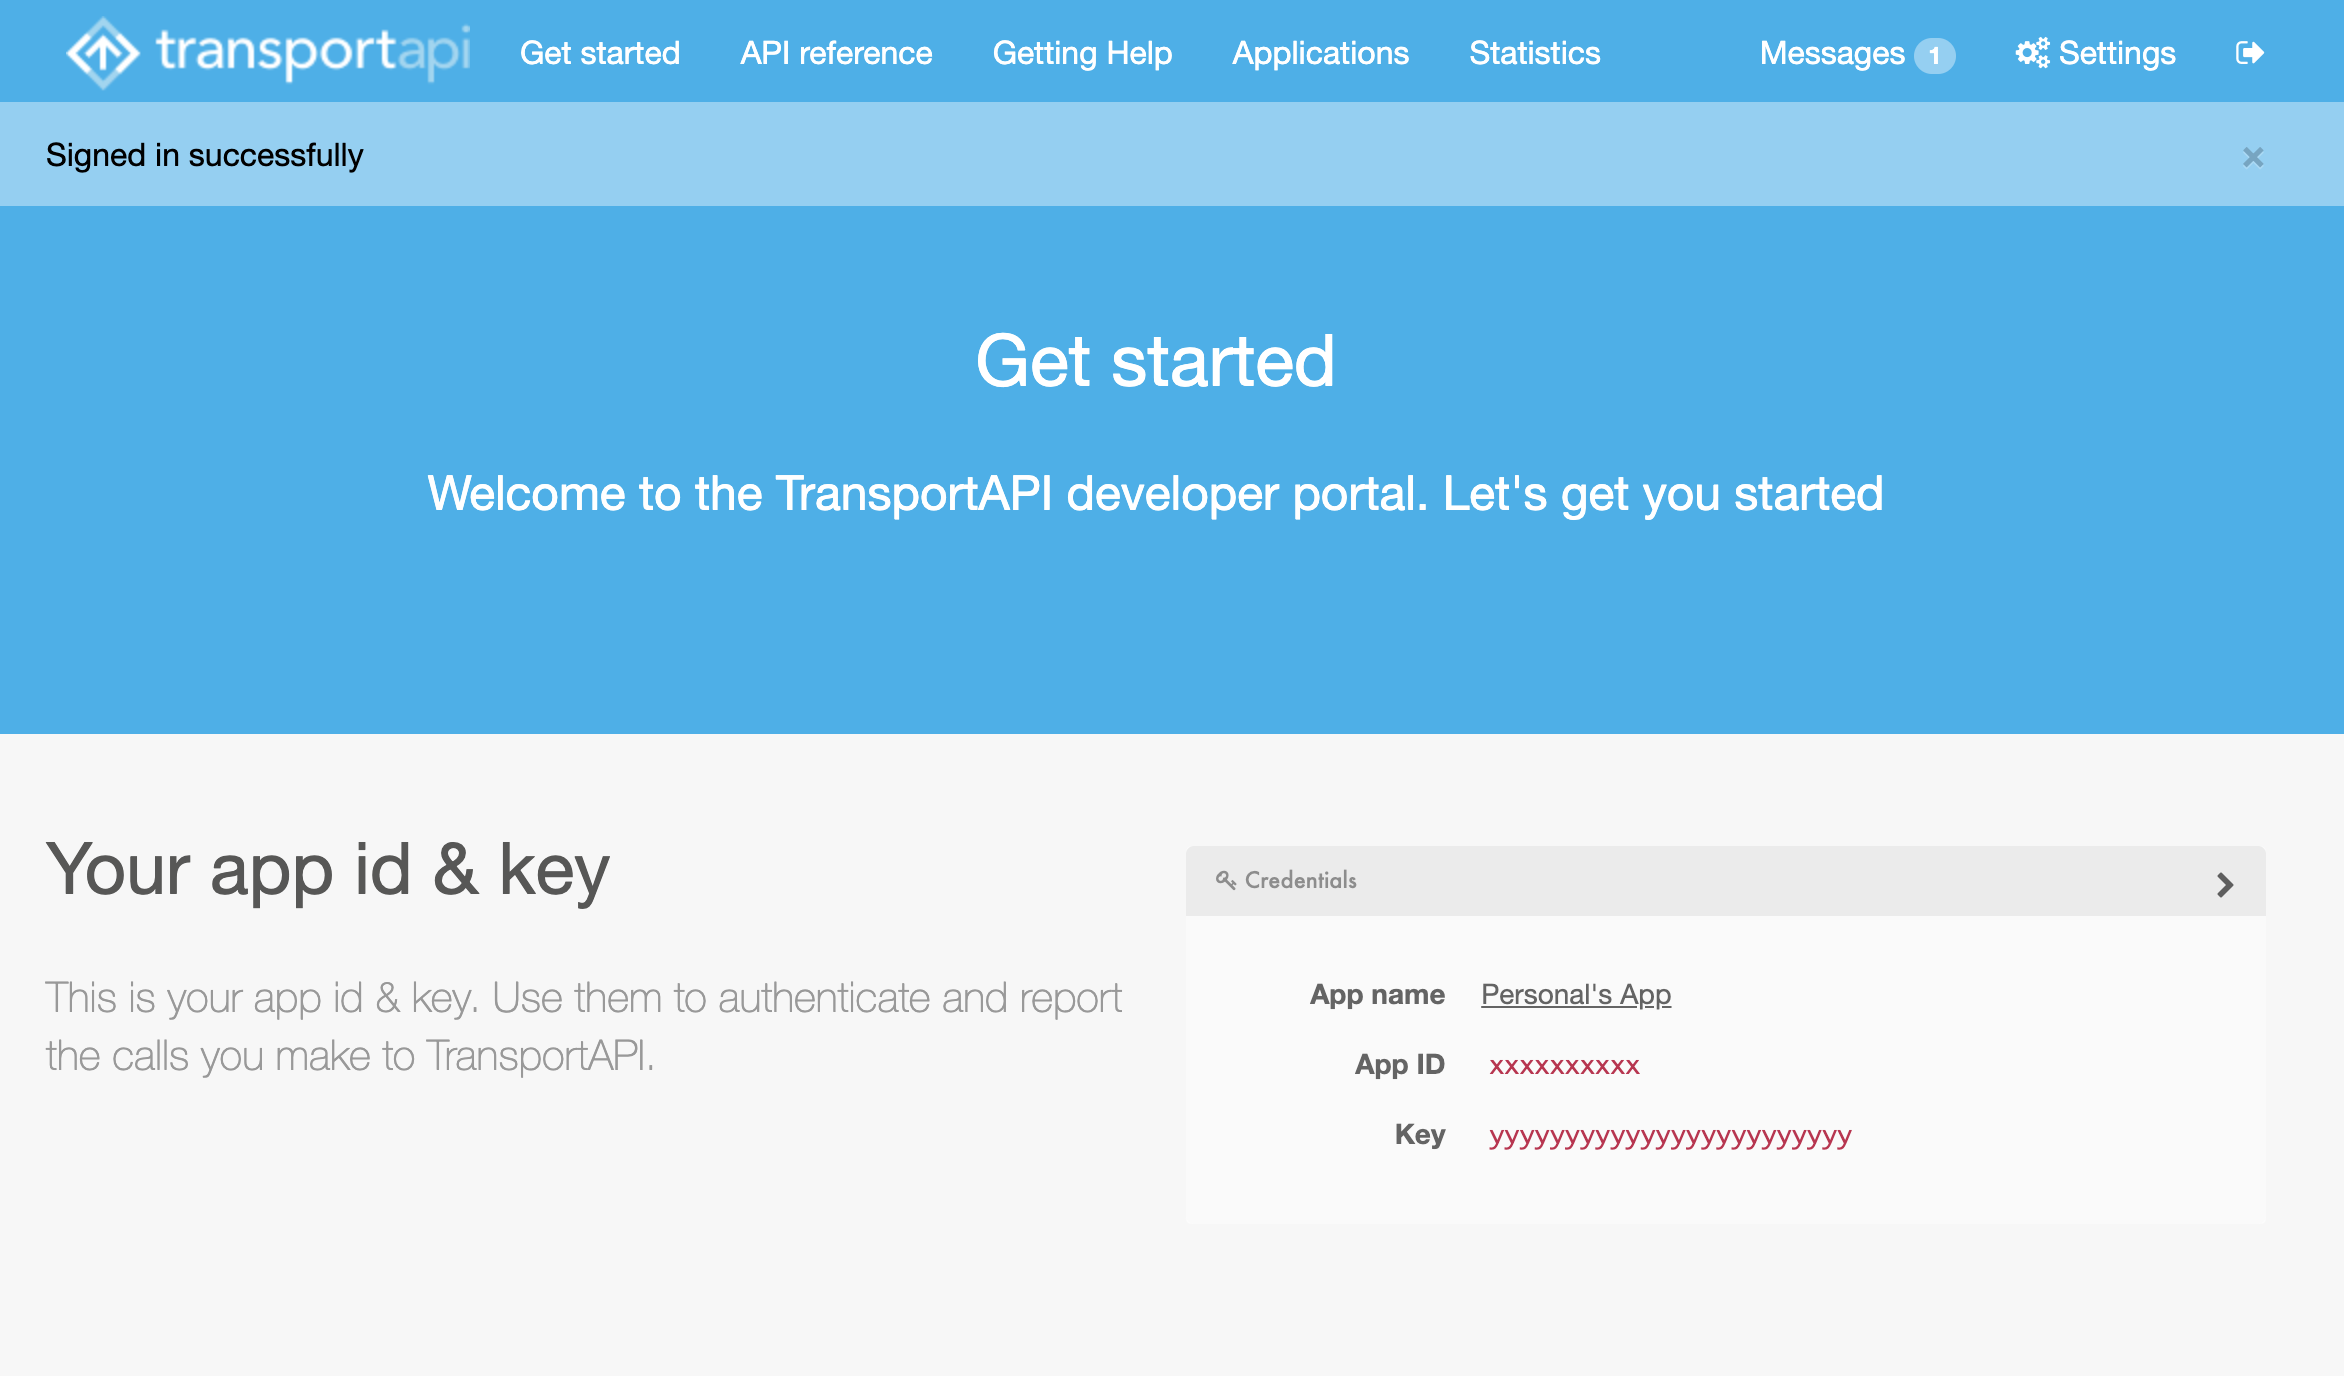 The TransportAPI Developer Landing Page